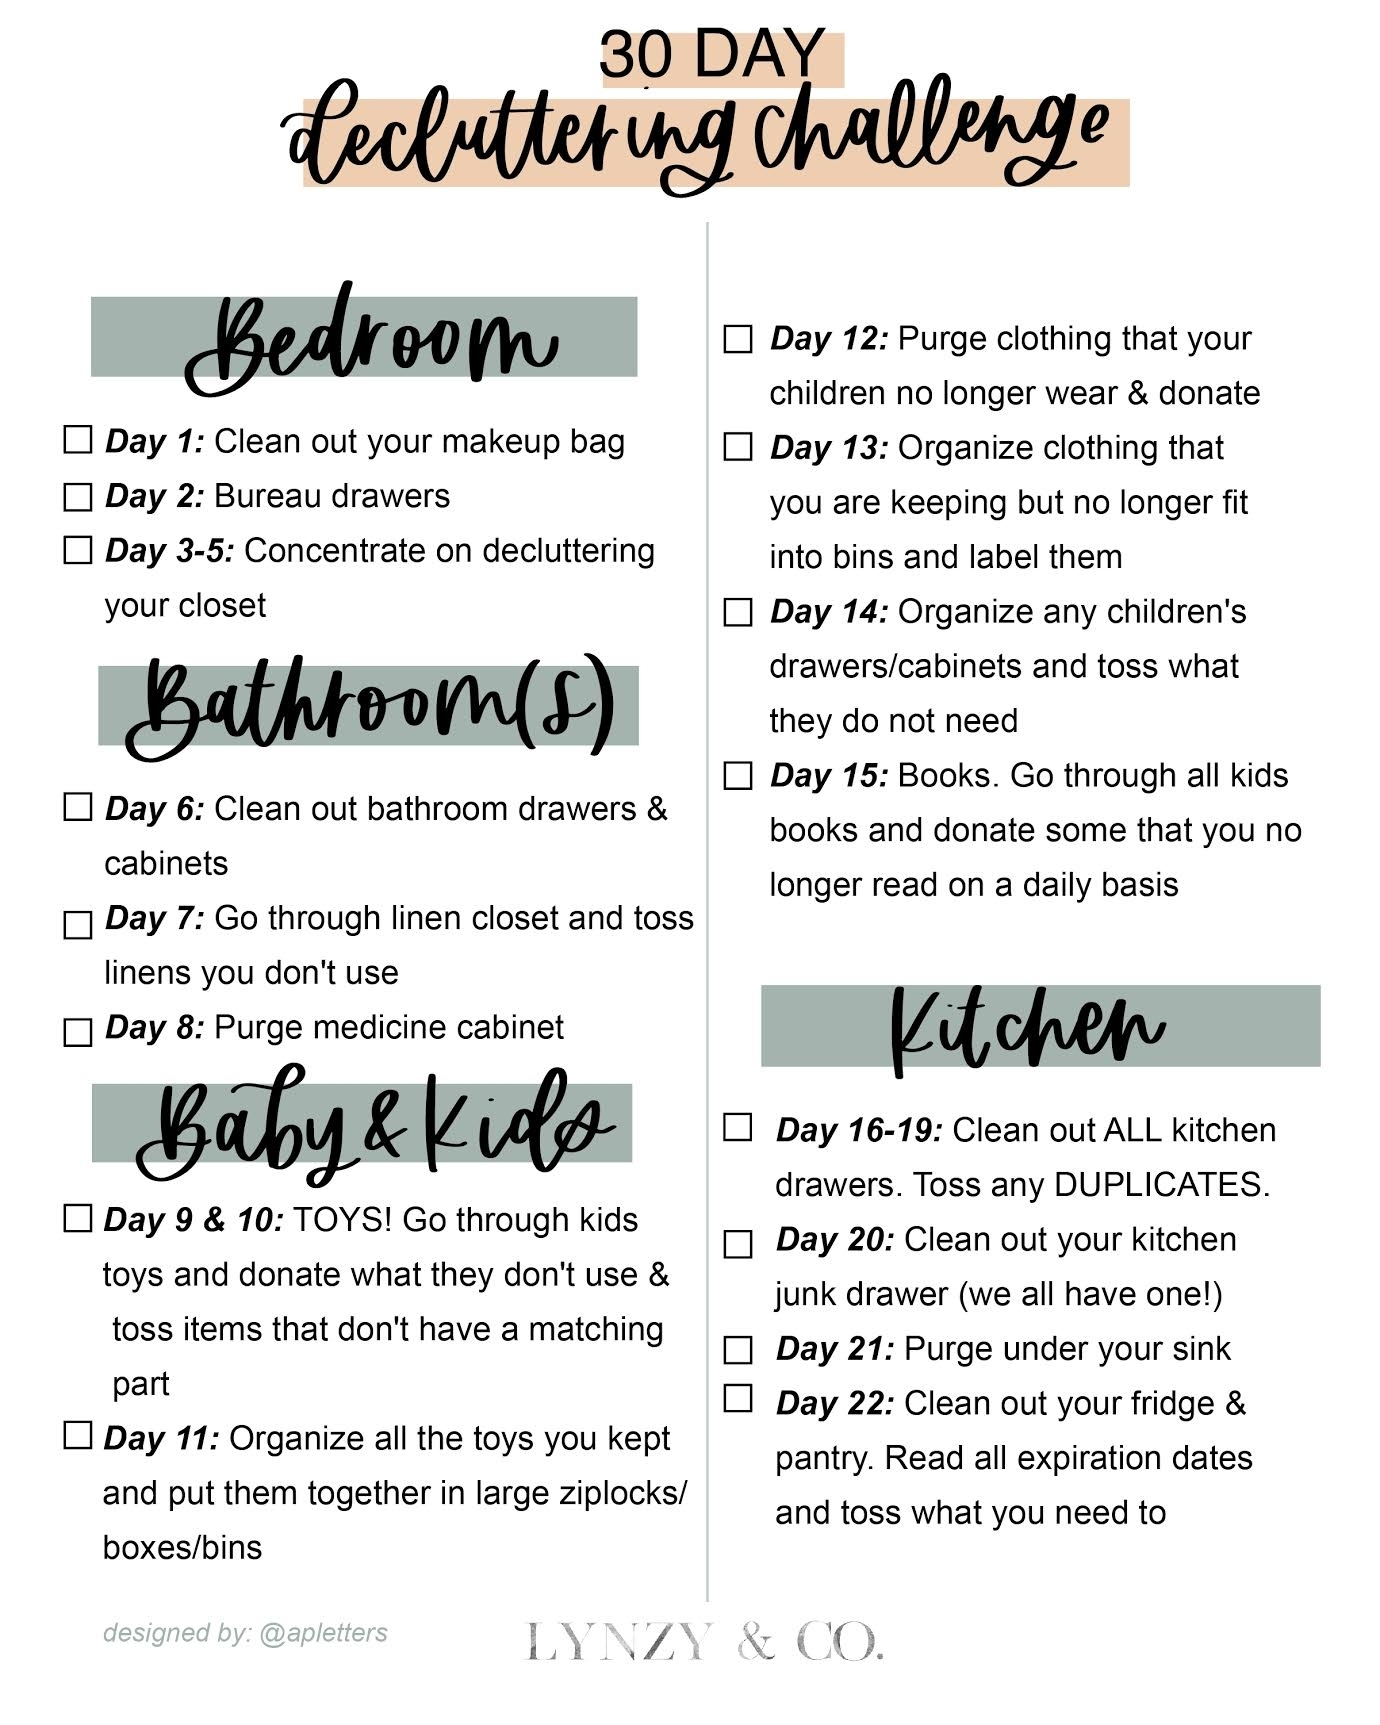 30 Day Decluttering Challenge & Printable - Lynzy & Co. throughout 30 Day Declutter Challenge Calendar